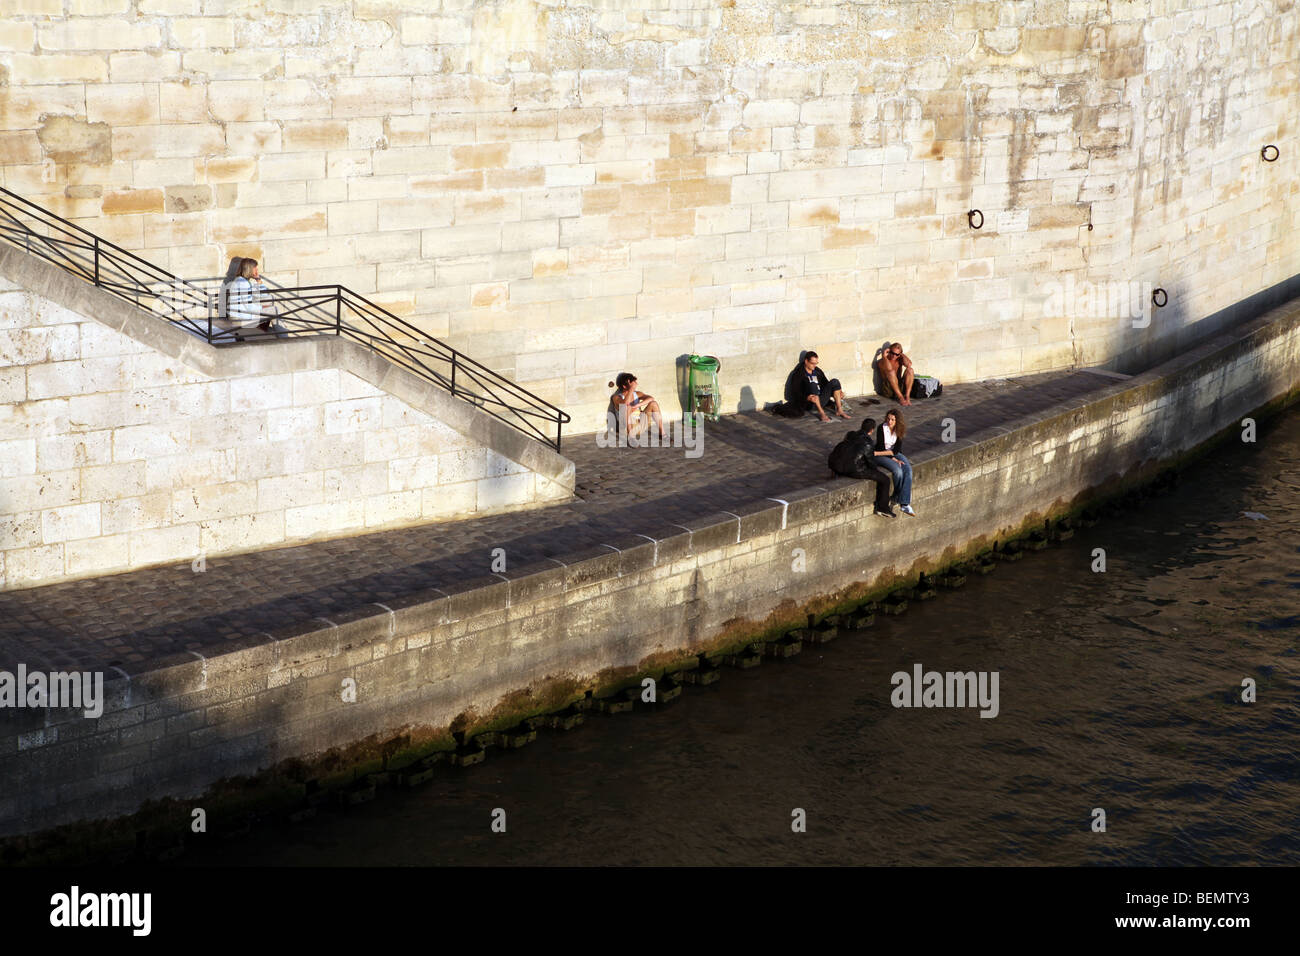 View of Quai d'Orleans from the Pont Saint Louis - Ile Saint Louis - Paris - France - Stock Image